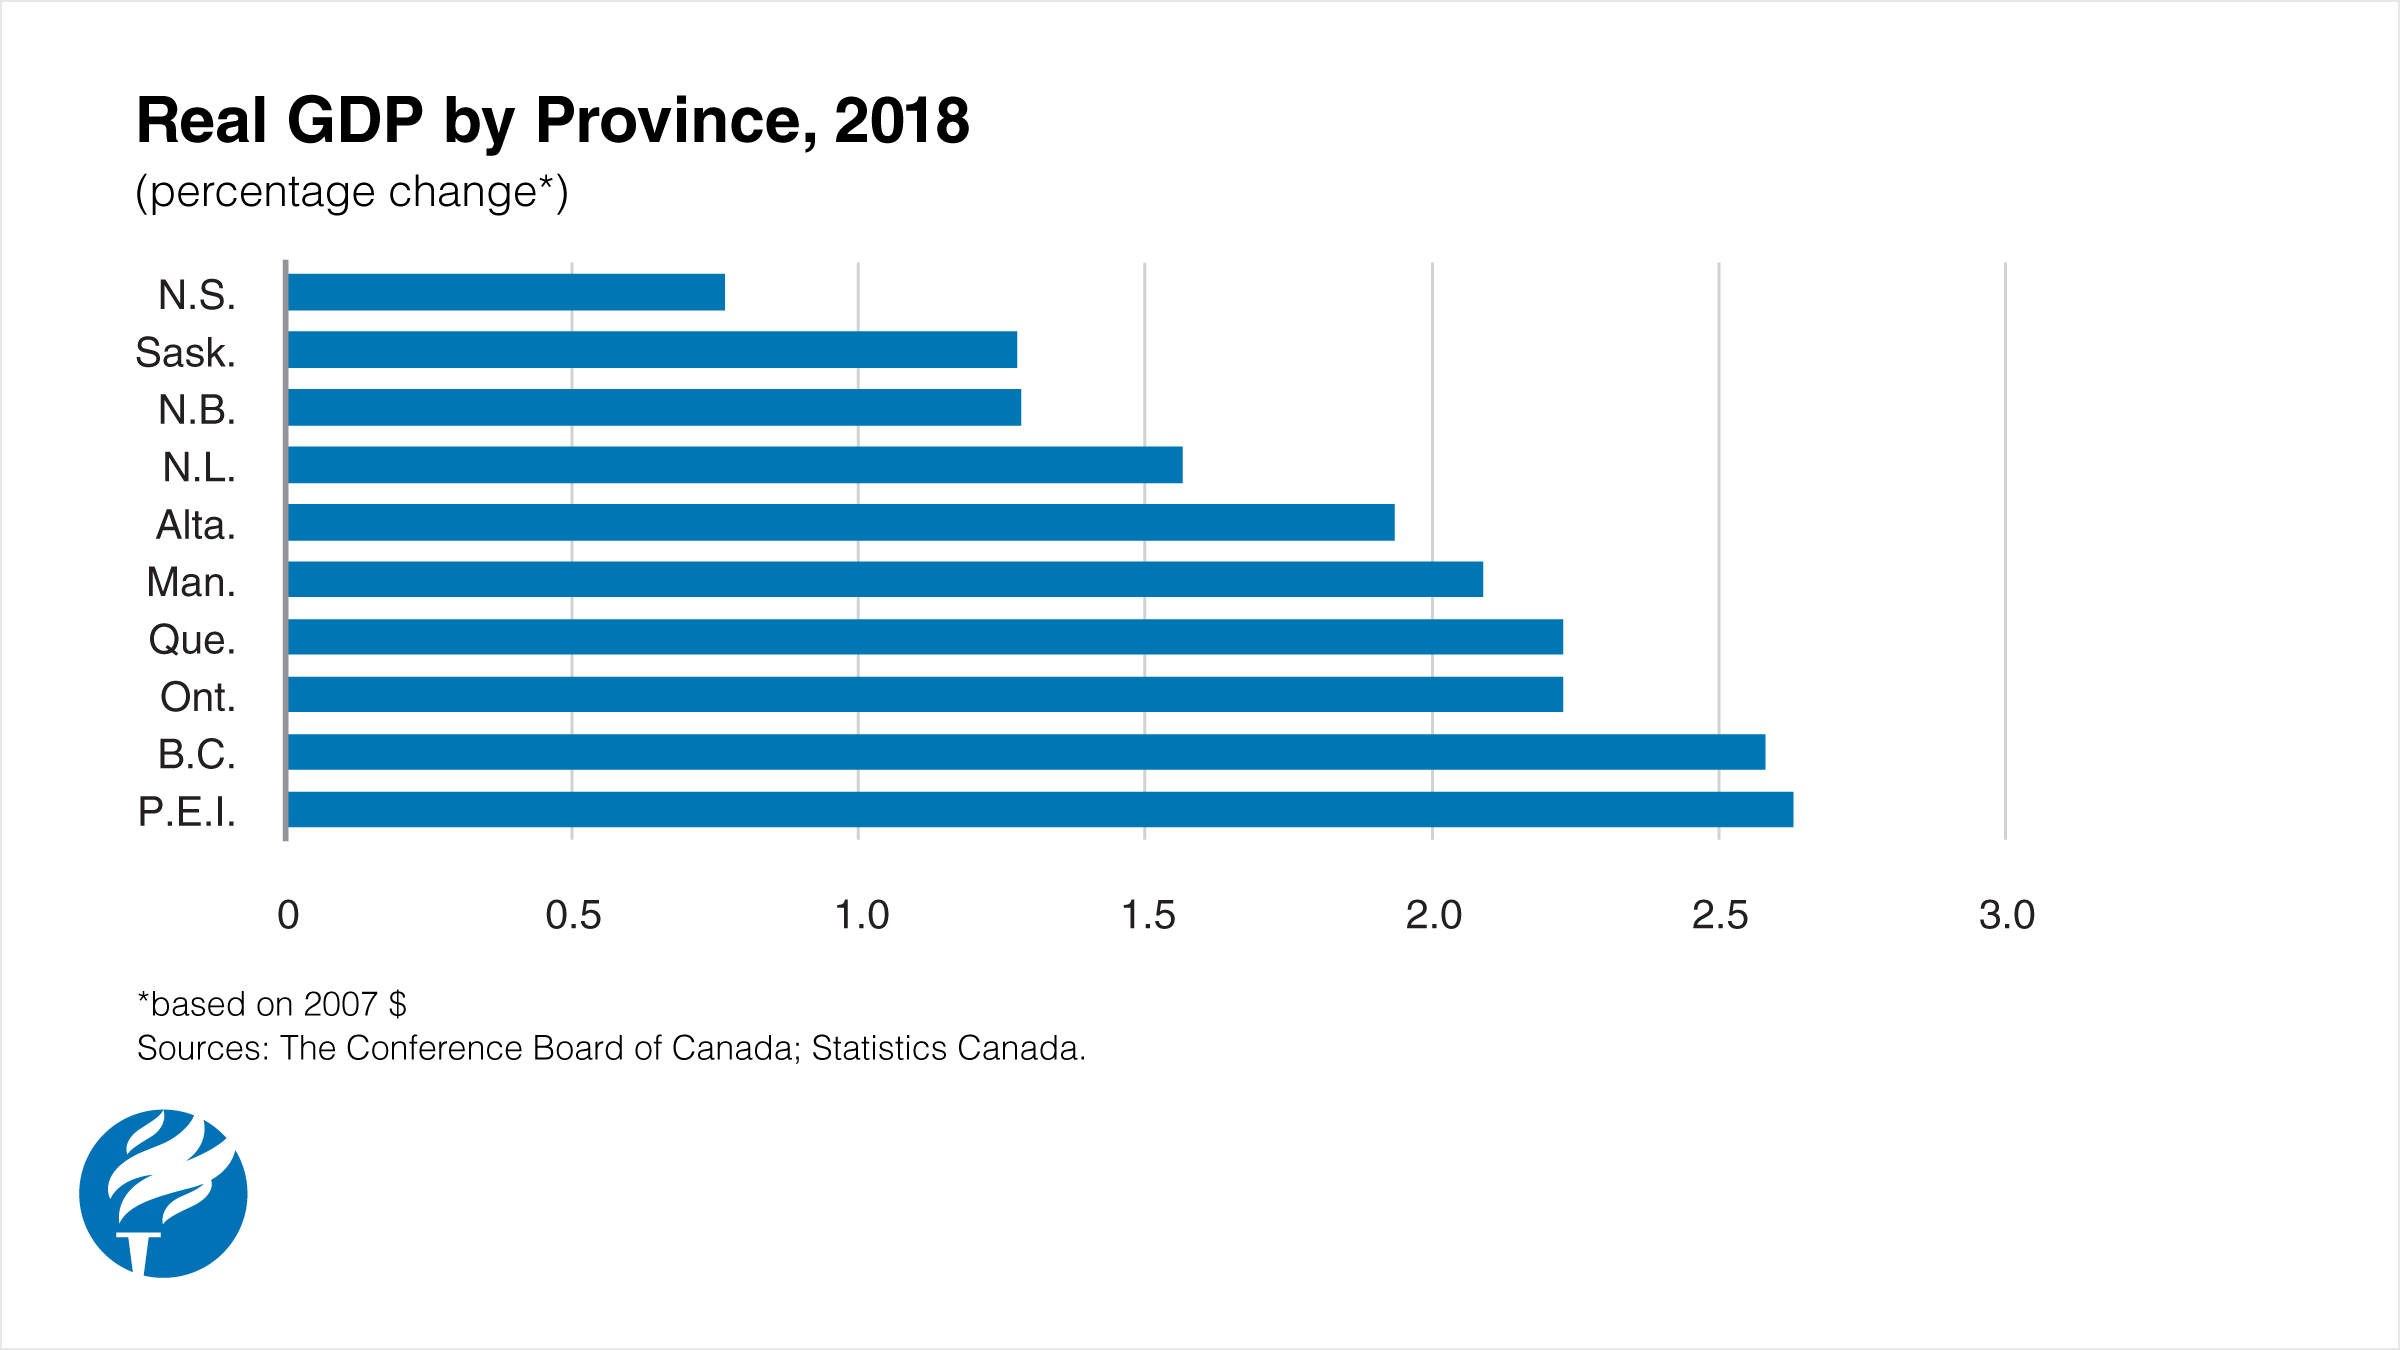 Weaker Economic Growth Forecast for All Provinces in 2018.